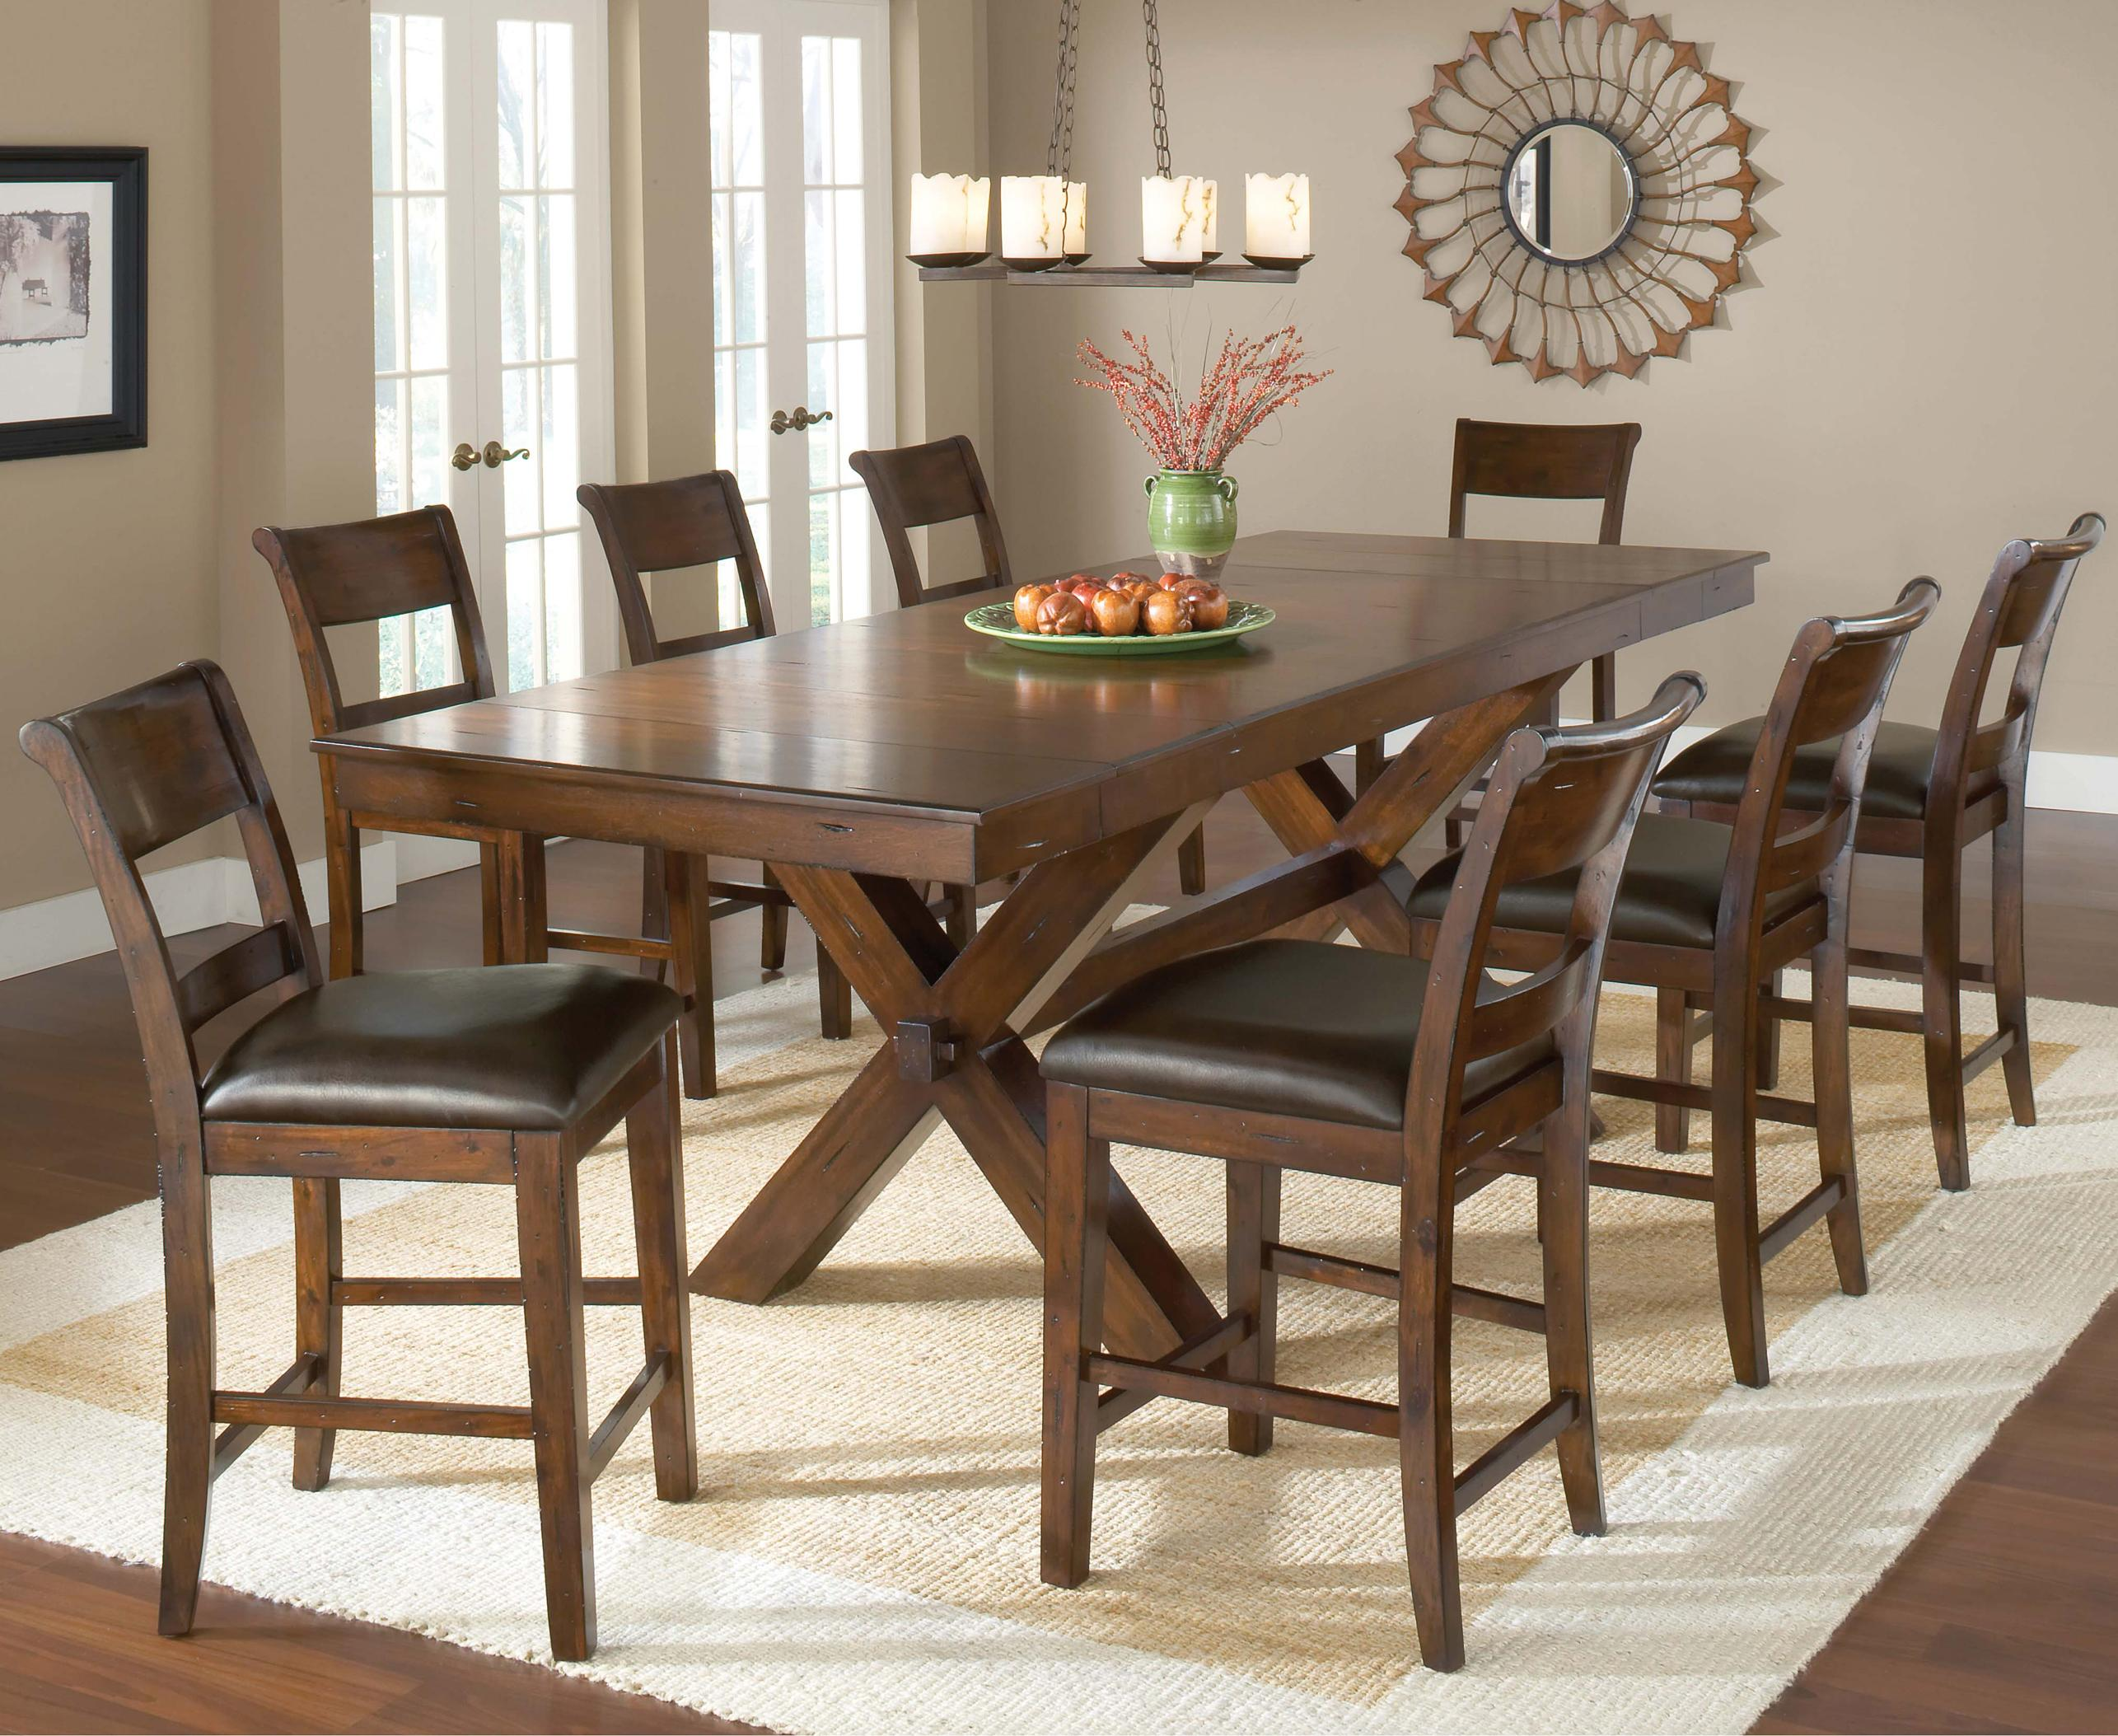 Hillsdale Park Avenue Counter Height Trestle Table Prime Brothers Furniture Pub Tables